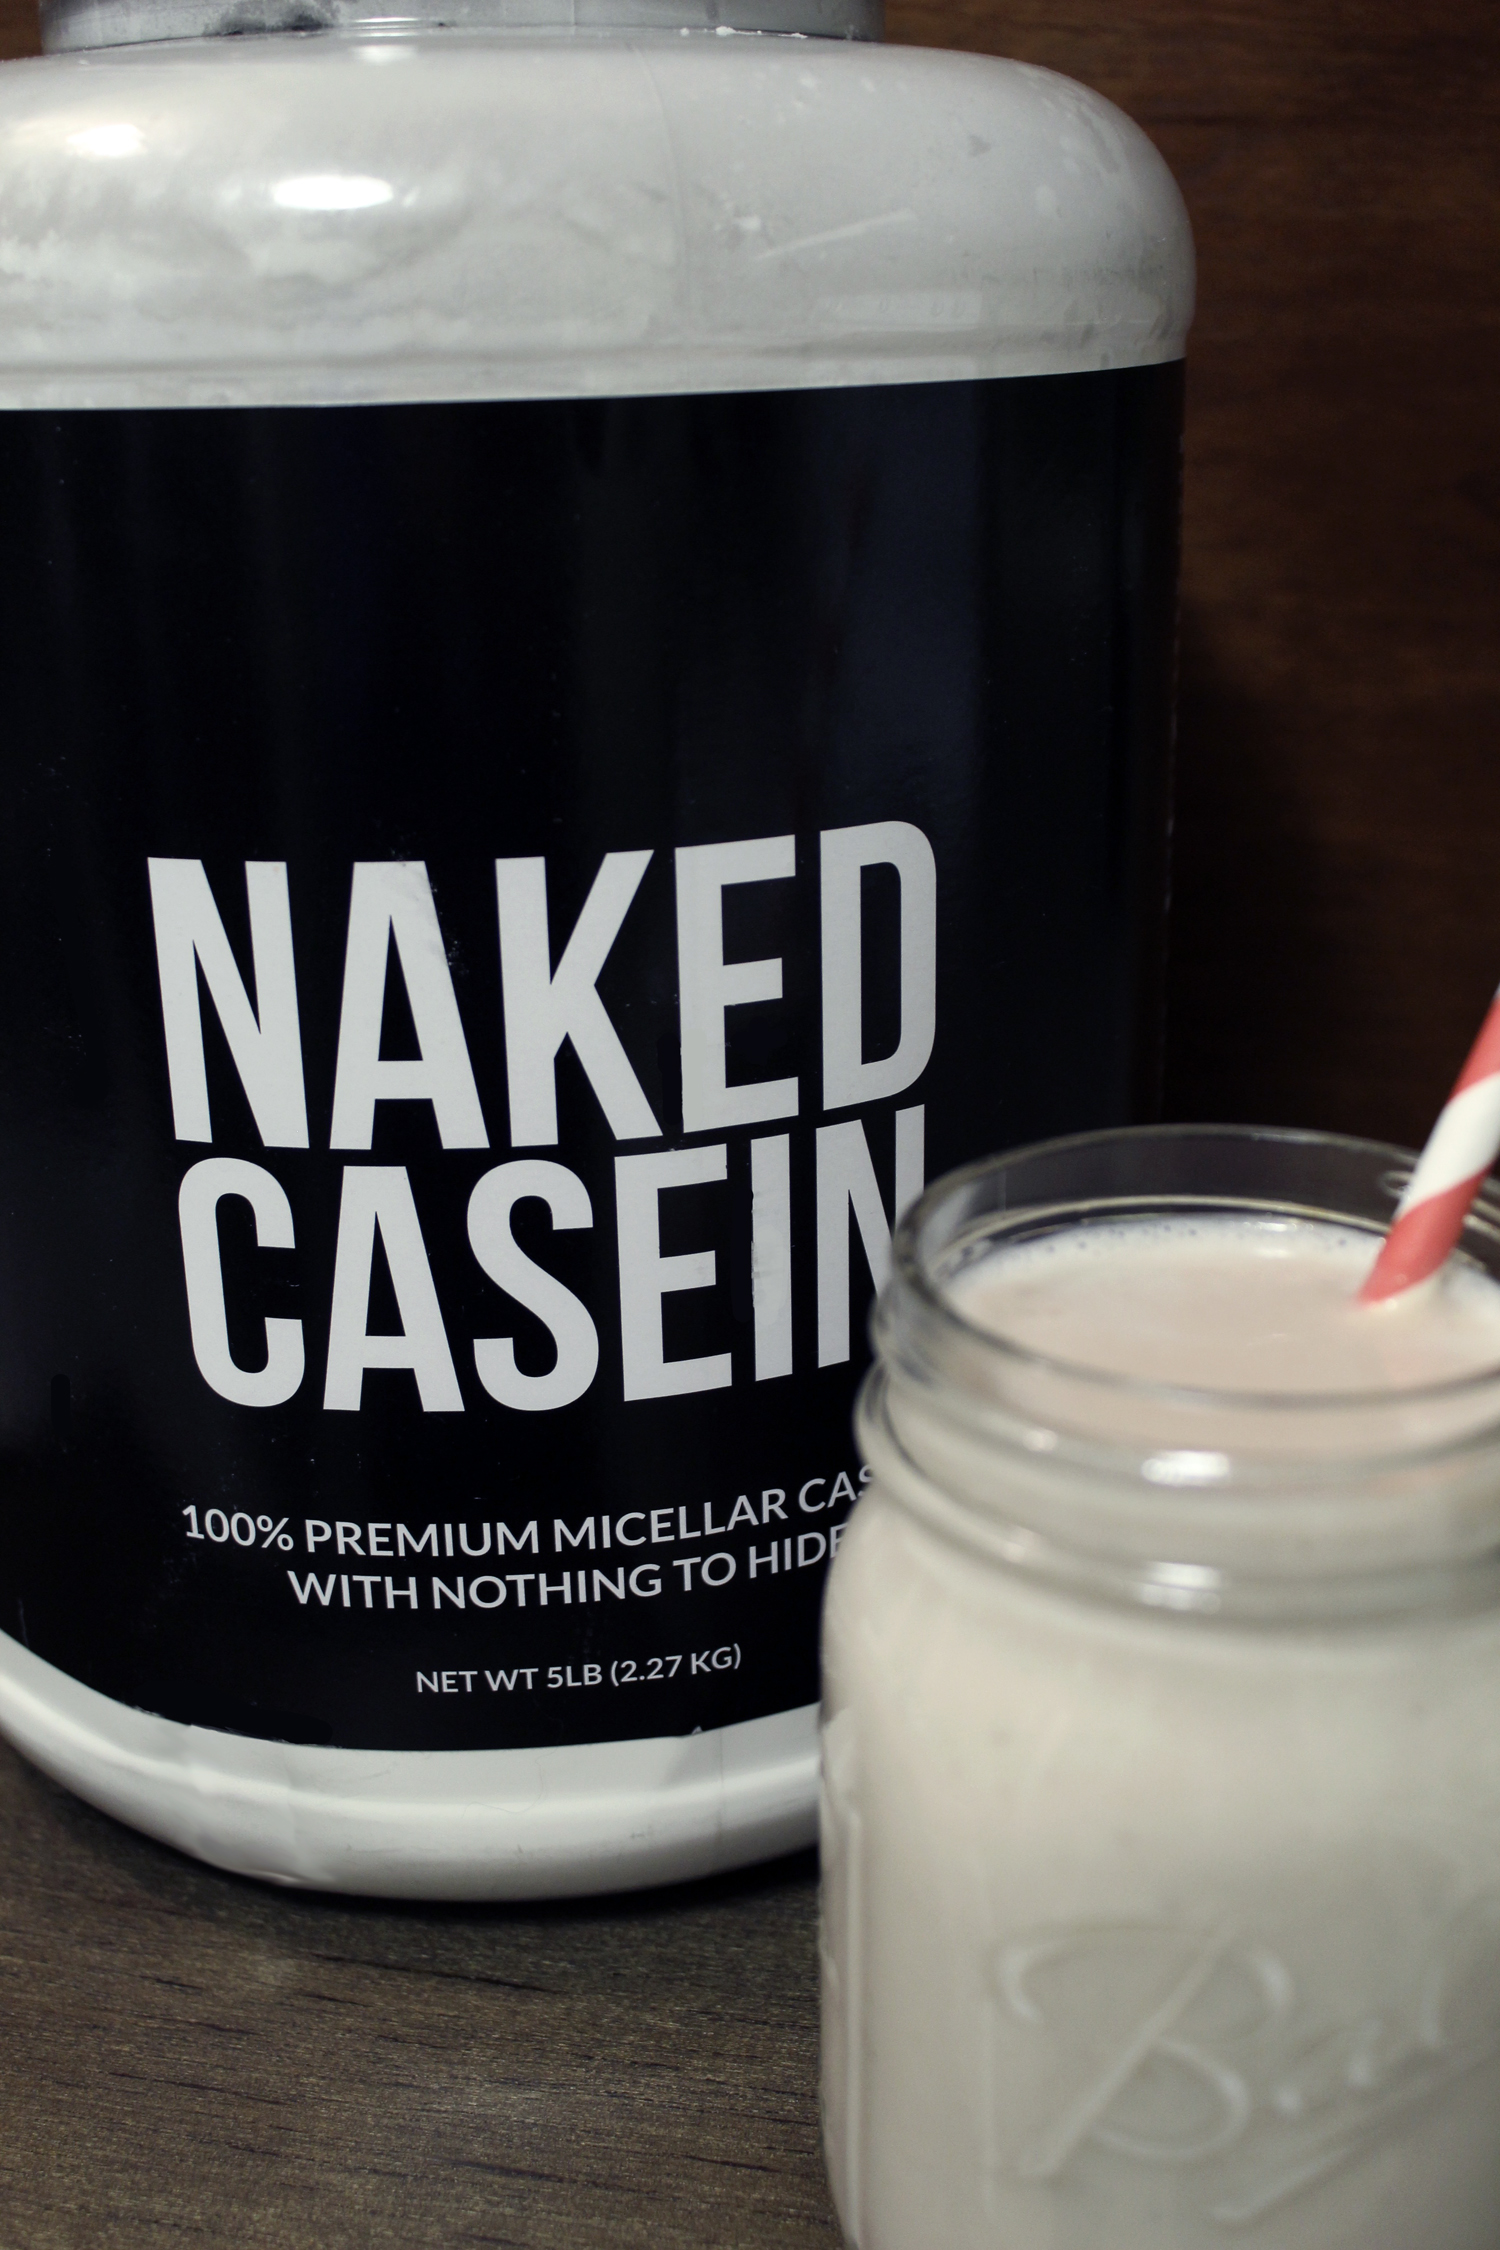 This high-protein, coconut banana bedtime snack smoothie is made with casein protein and will keep you fuller, longer. Casein is great for muscle build and fat loss. Enjoy! -Running on Happy